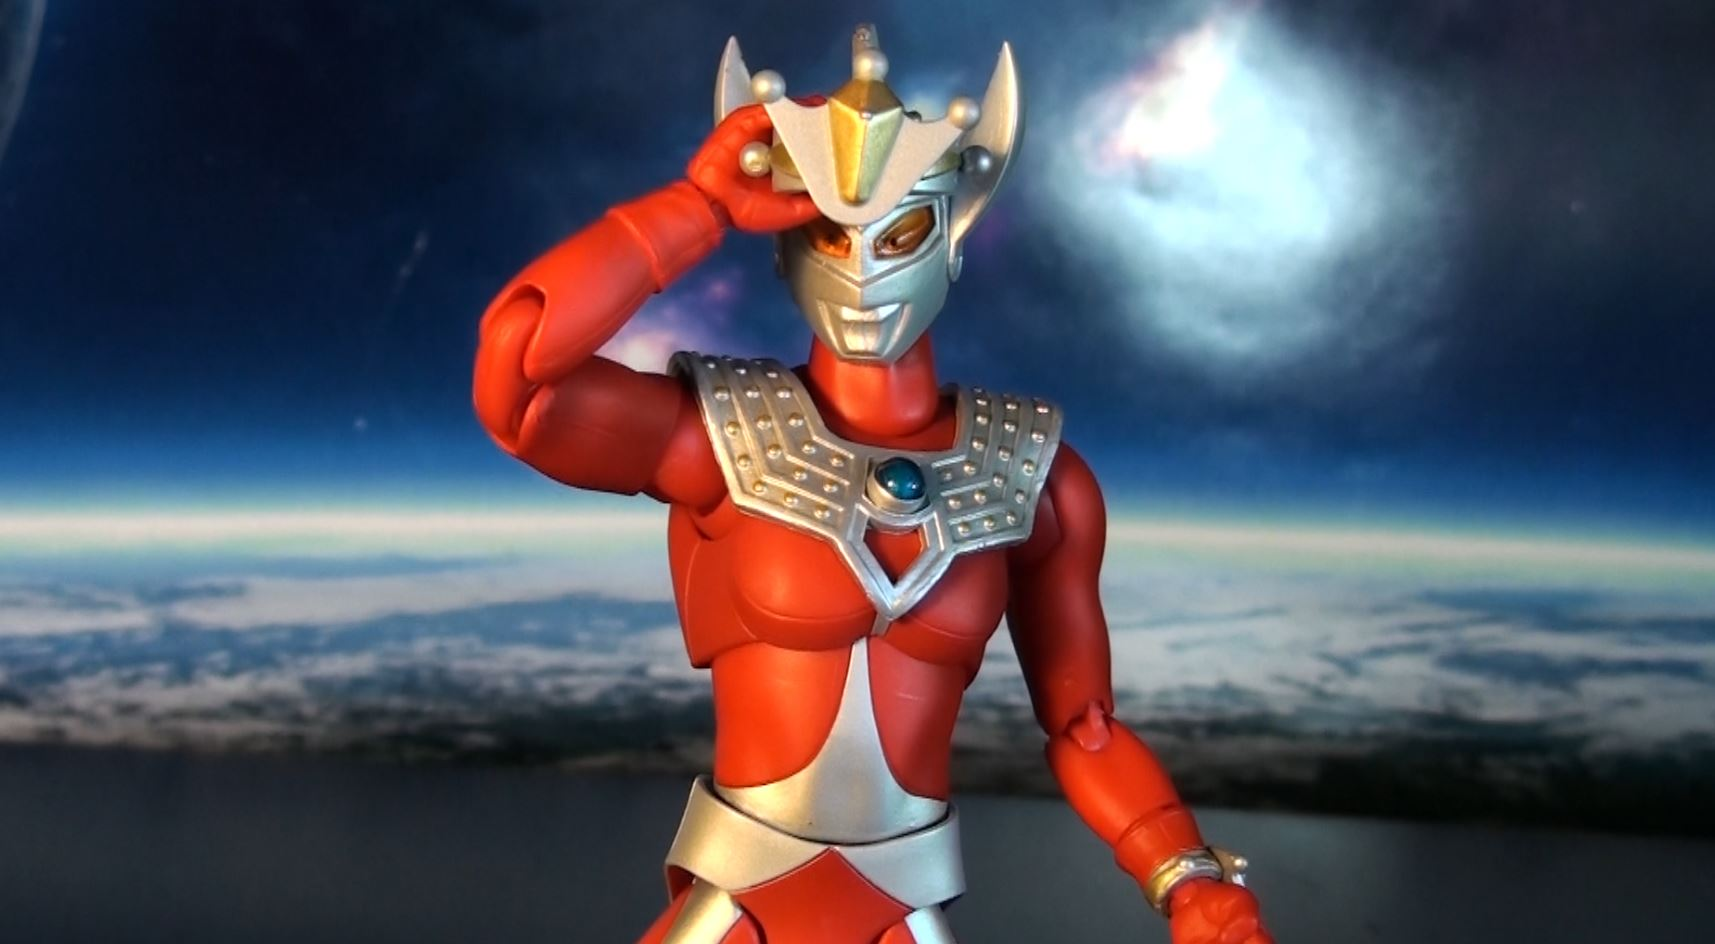 Ultraman King Bandai Ultra Act Ultraman Taro